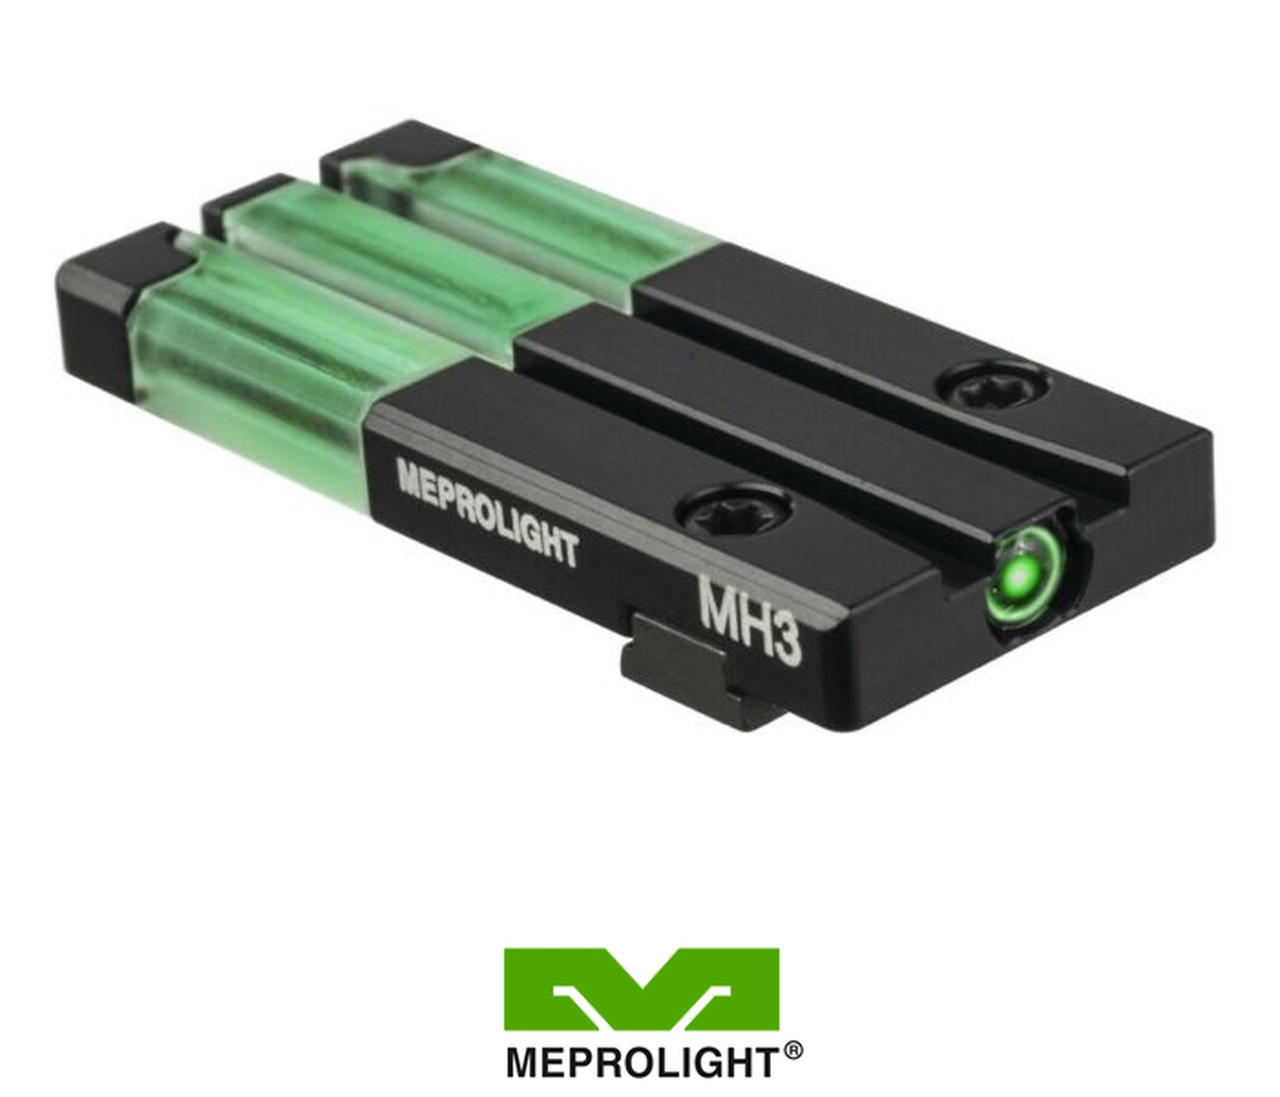 Meprolight ft bullseye sight (Smith and Wesson M&P models)